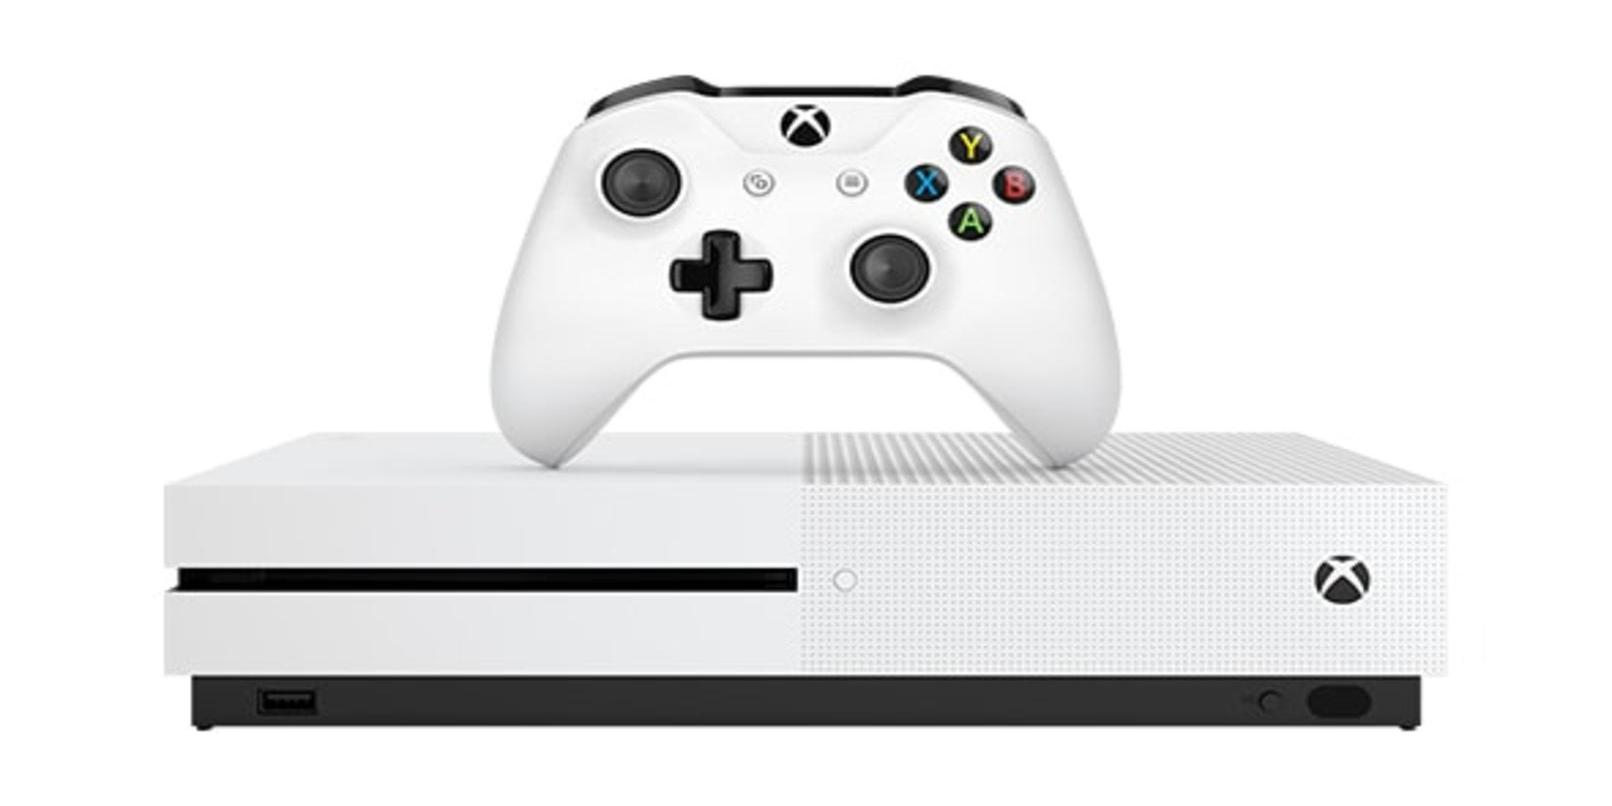 Enter now to win The Xbox One S Giveaway ($399 value)